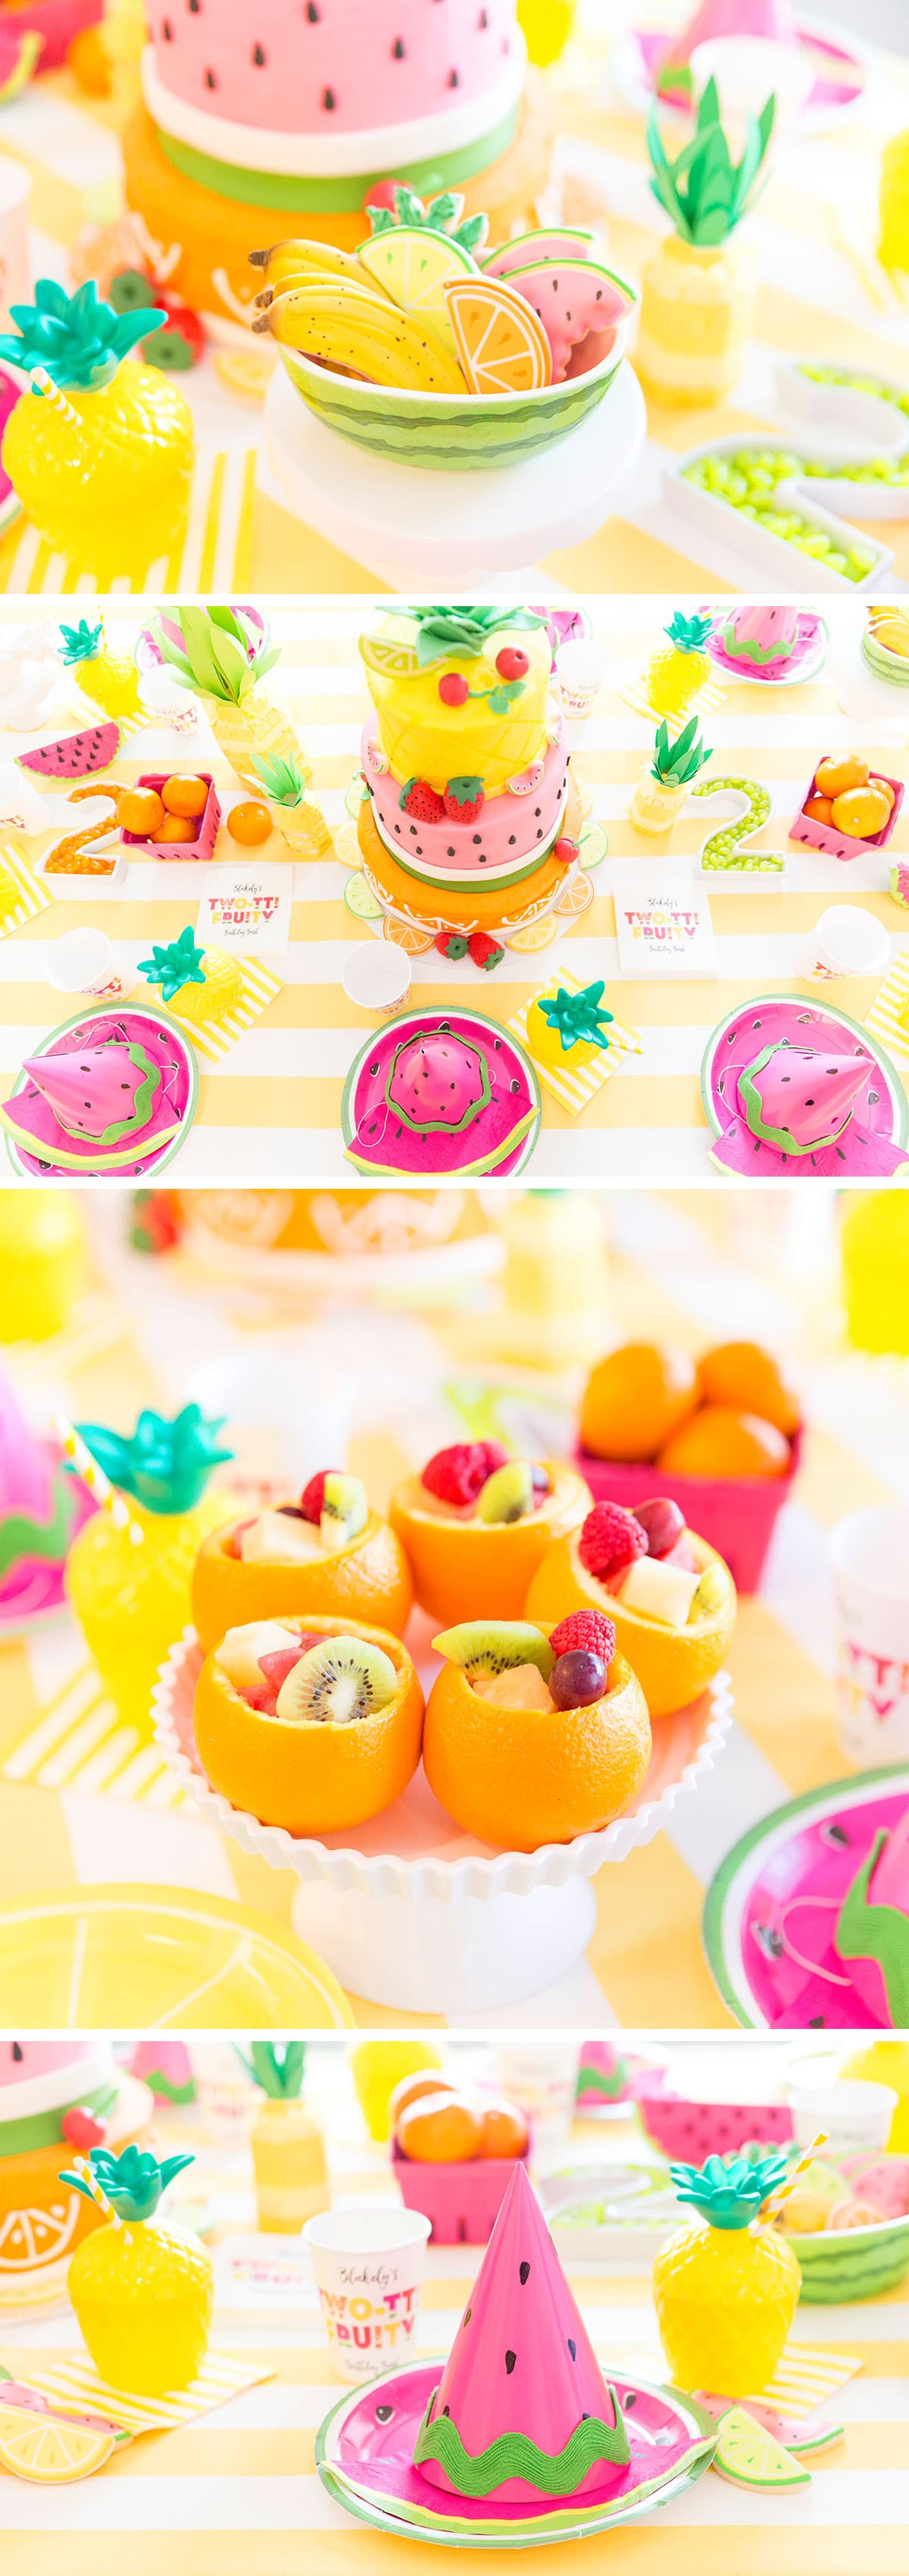 Fruity Birthday Party! Details and photos!